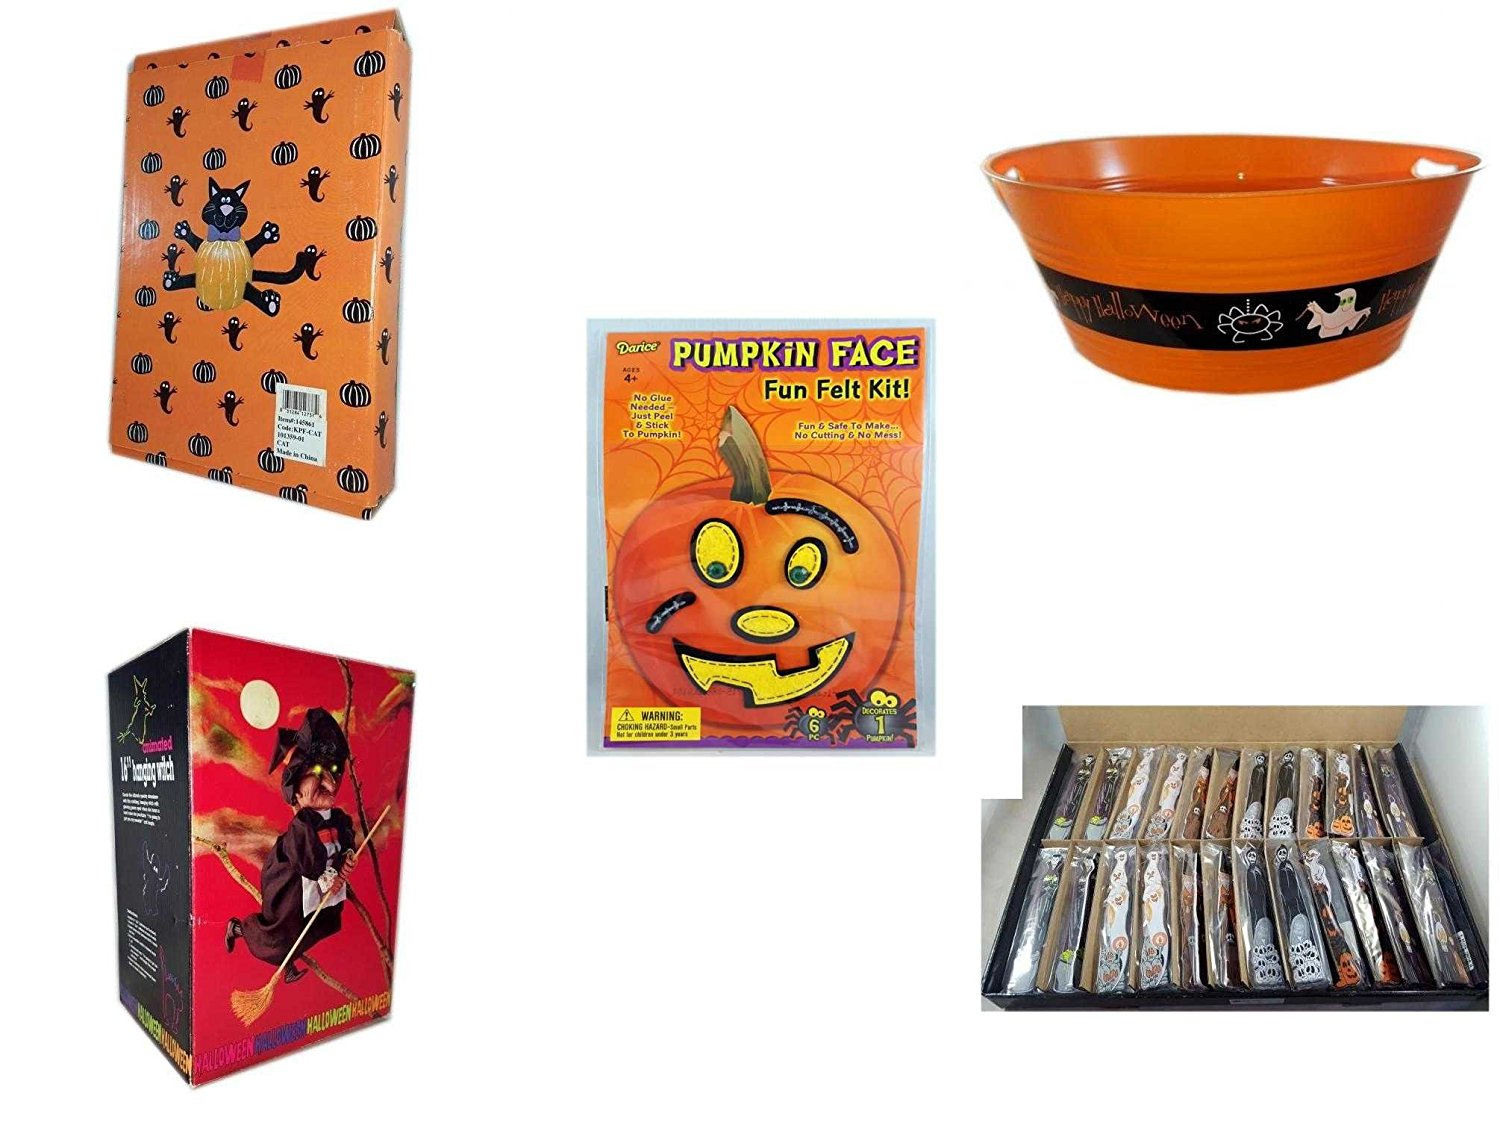 "Halloween Fun Gift Bundle [5 piece] - Halloween Cat Pumpkin Push In 5 Piece Head Arms Legs - 17.75 Inch Orange ""Happy Halloween"" Party Tub - Darice Pumpkin Face Fun Felt Kit - Stitches - Halloween"